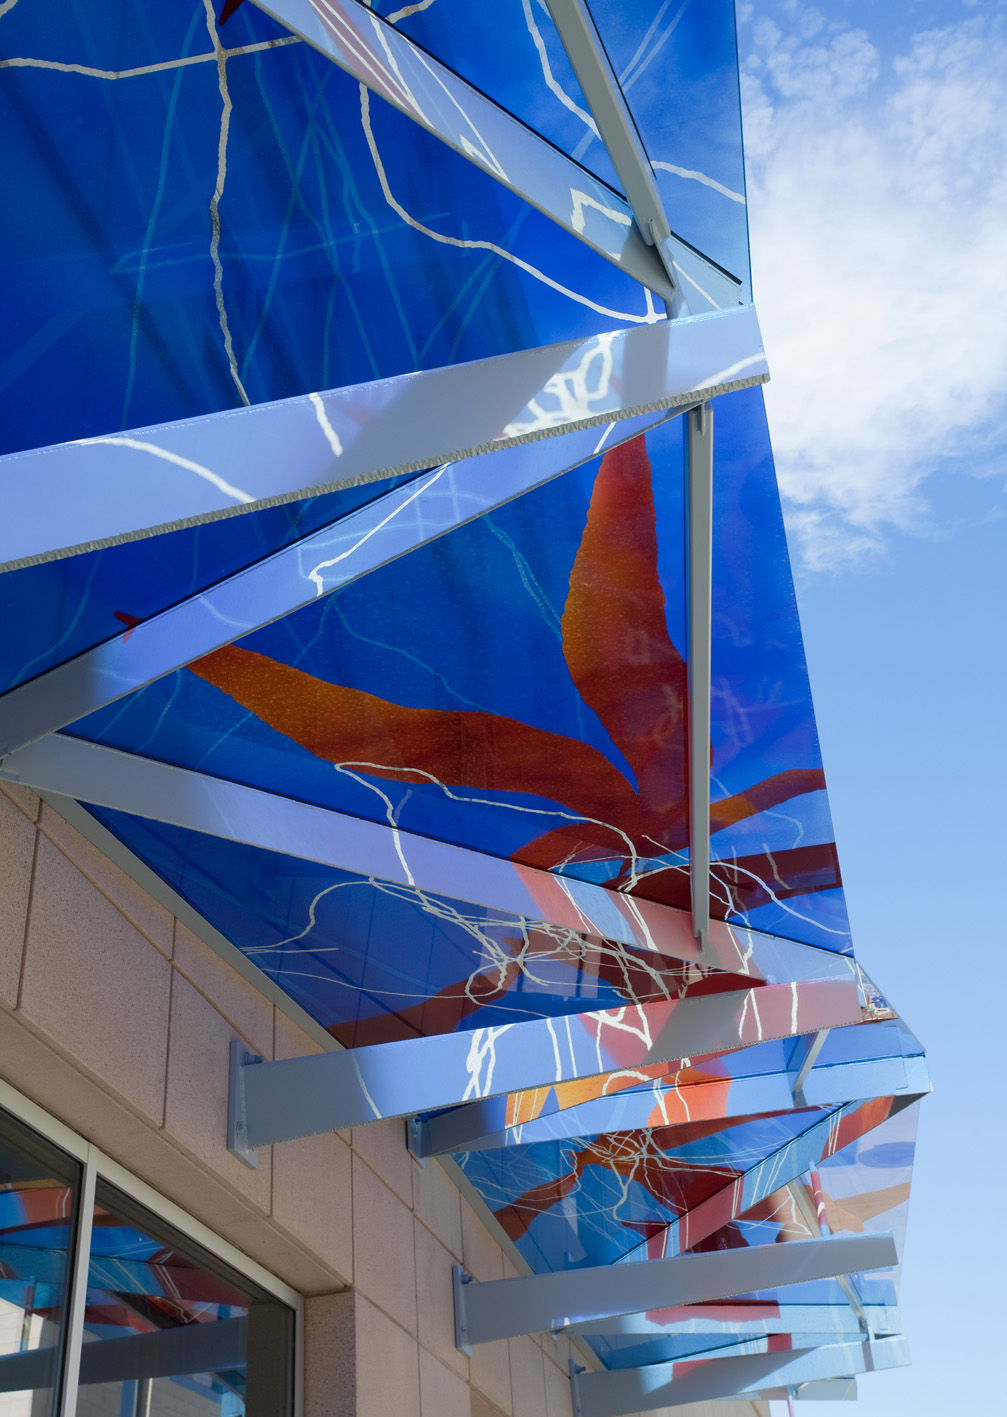 Untitled (Blue Glass Awning)